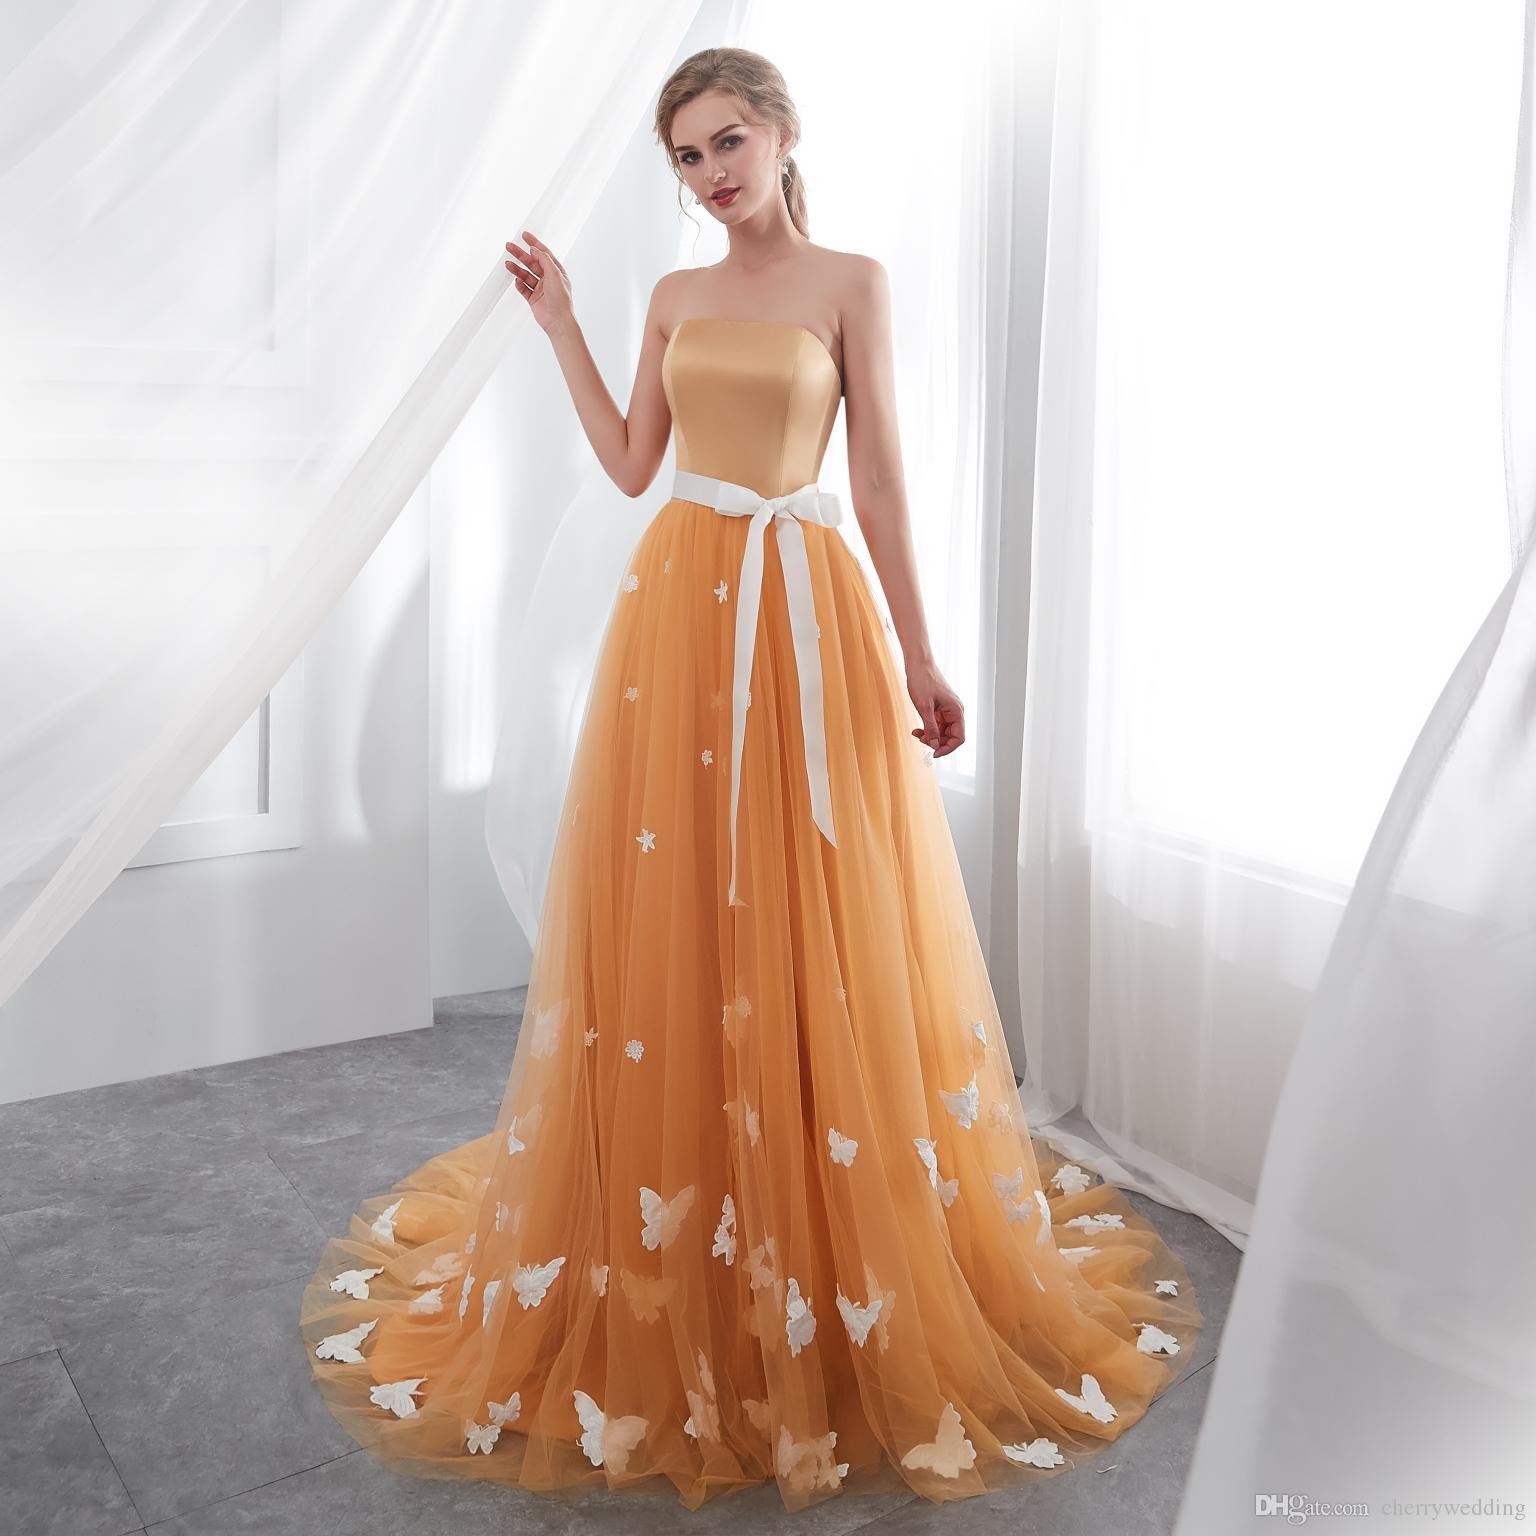 c54911a2a90 Strapless Wedding Dresses Straight Neck Gold A Line Wedding Dress Color  Wedding Dress Tulle Skirt Rob Robe Mariee Detachable Sash 23E017 Amazing  Wedding ...